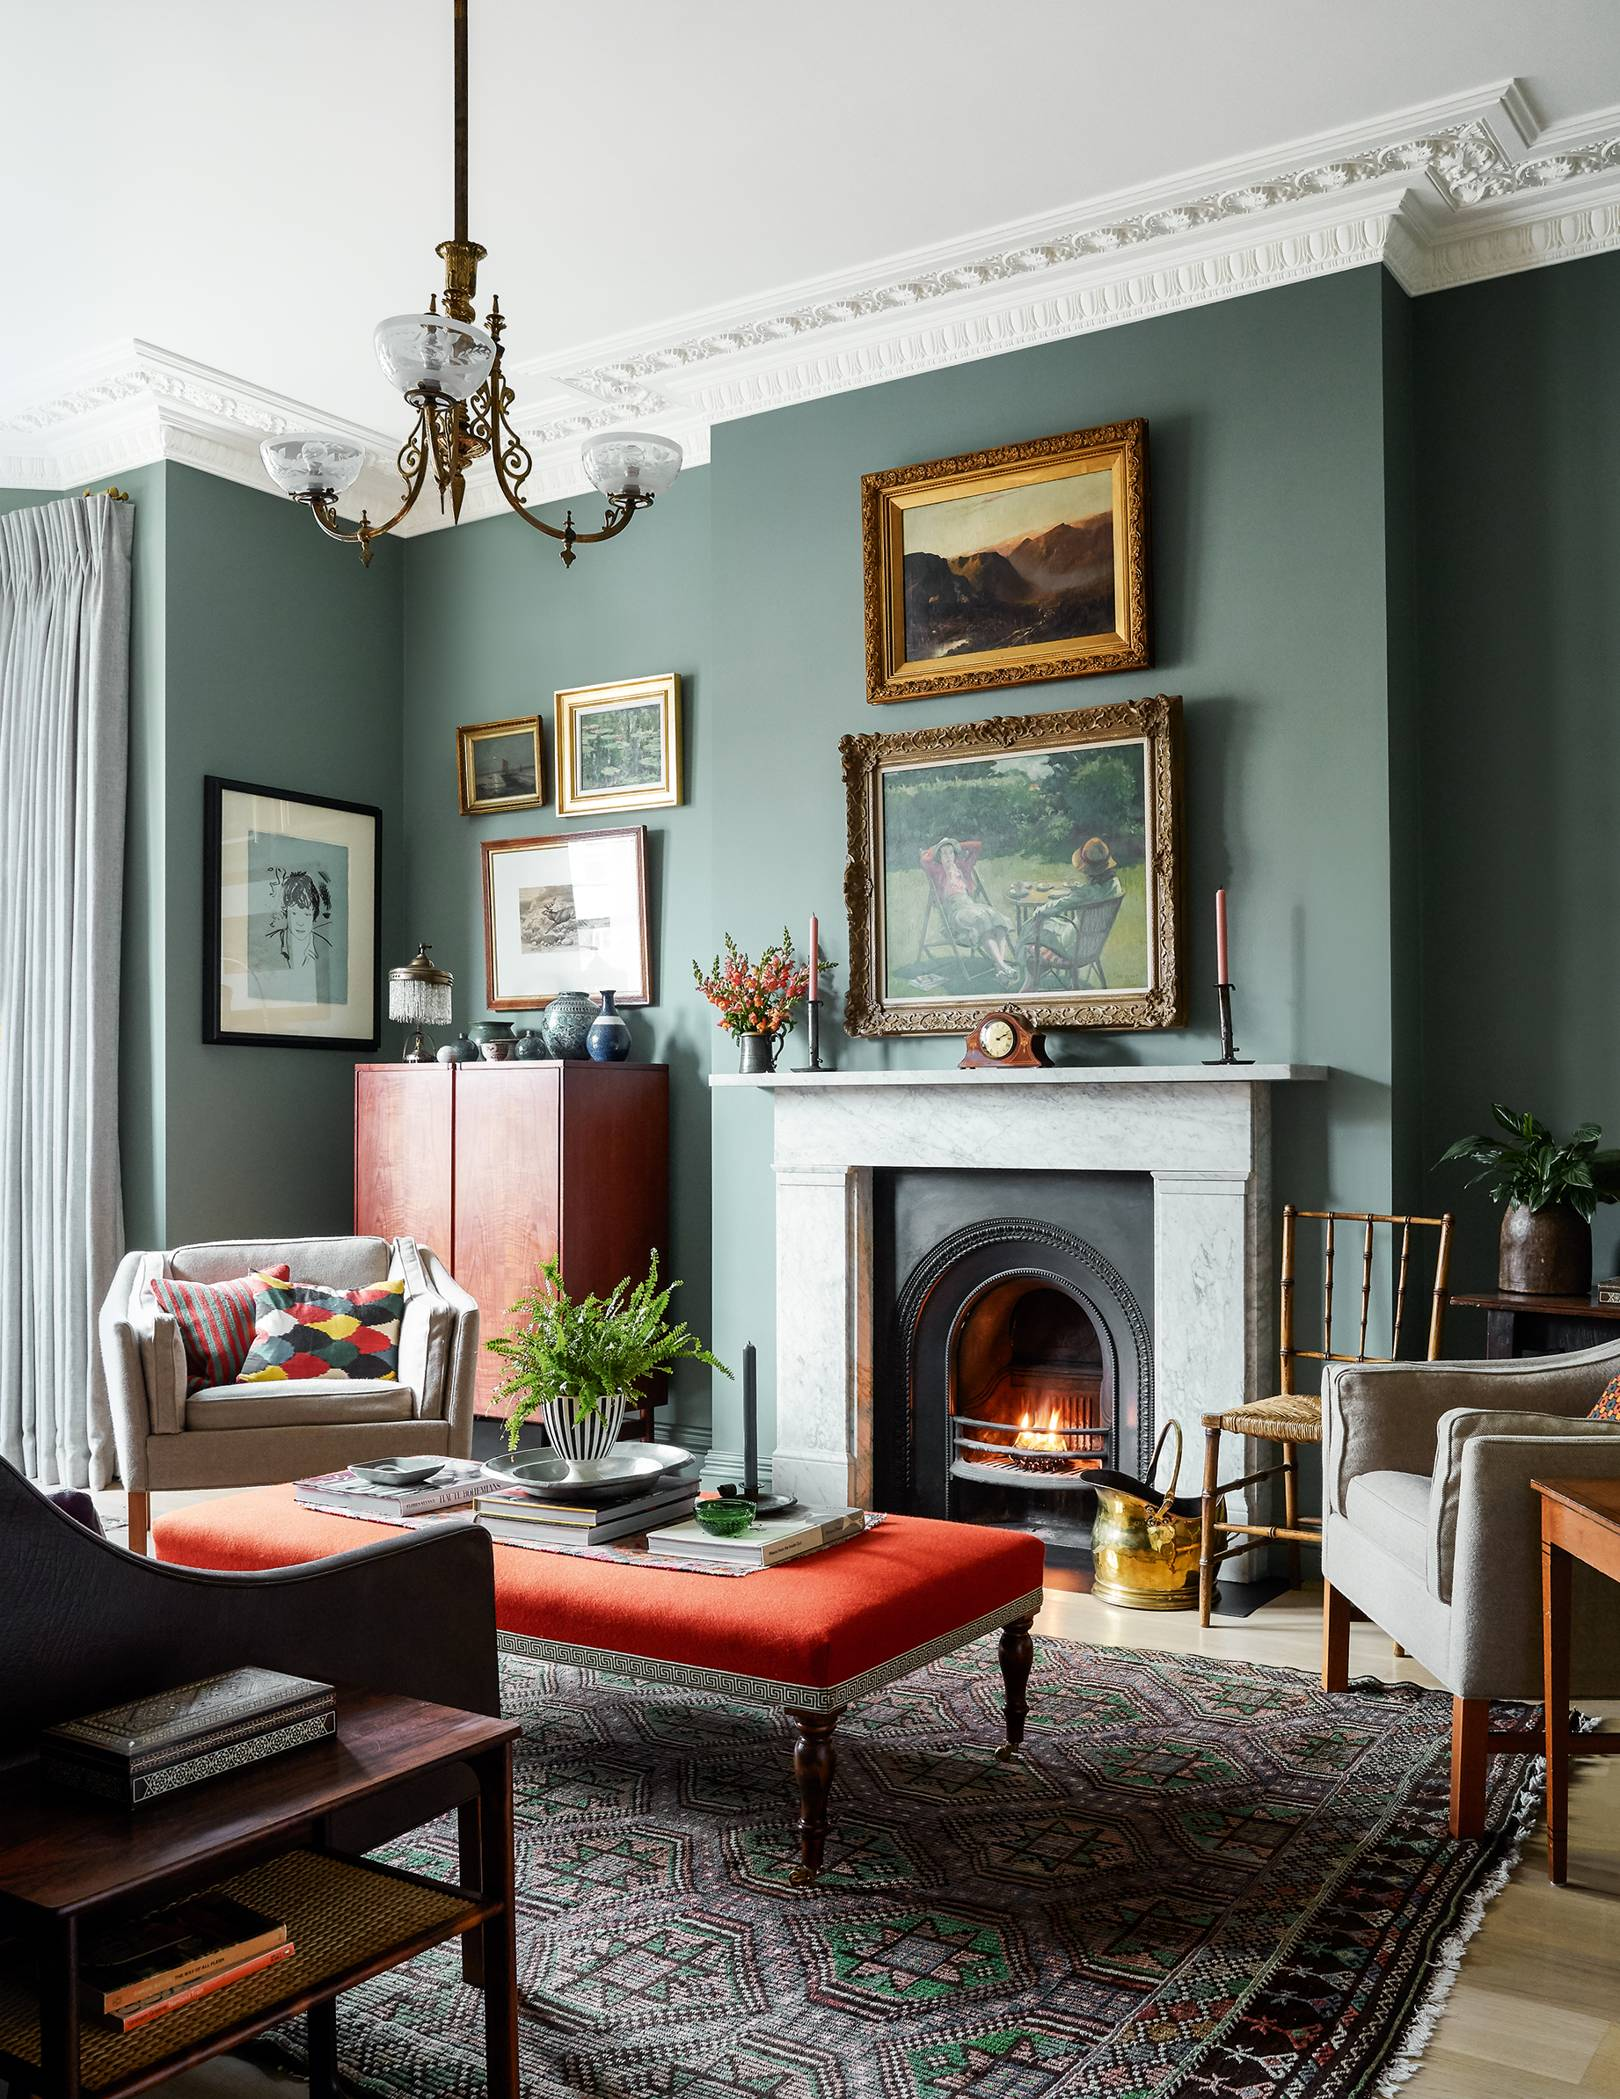 IMAGE: via House and Garden feat. paint color 'Castle Gray' from Farrow and Ball